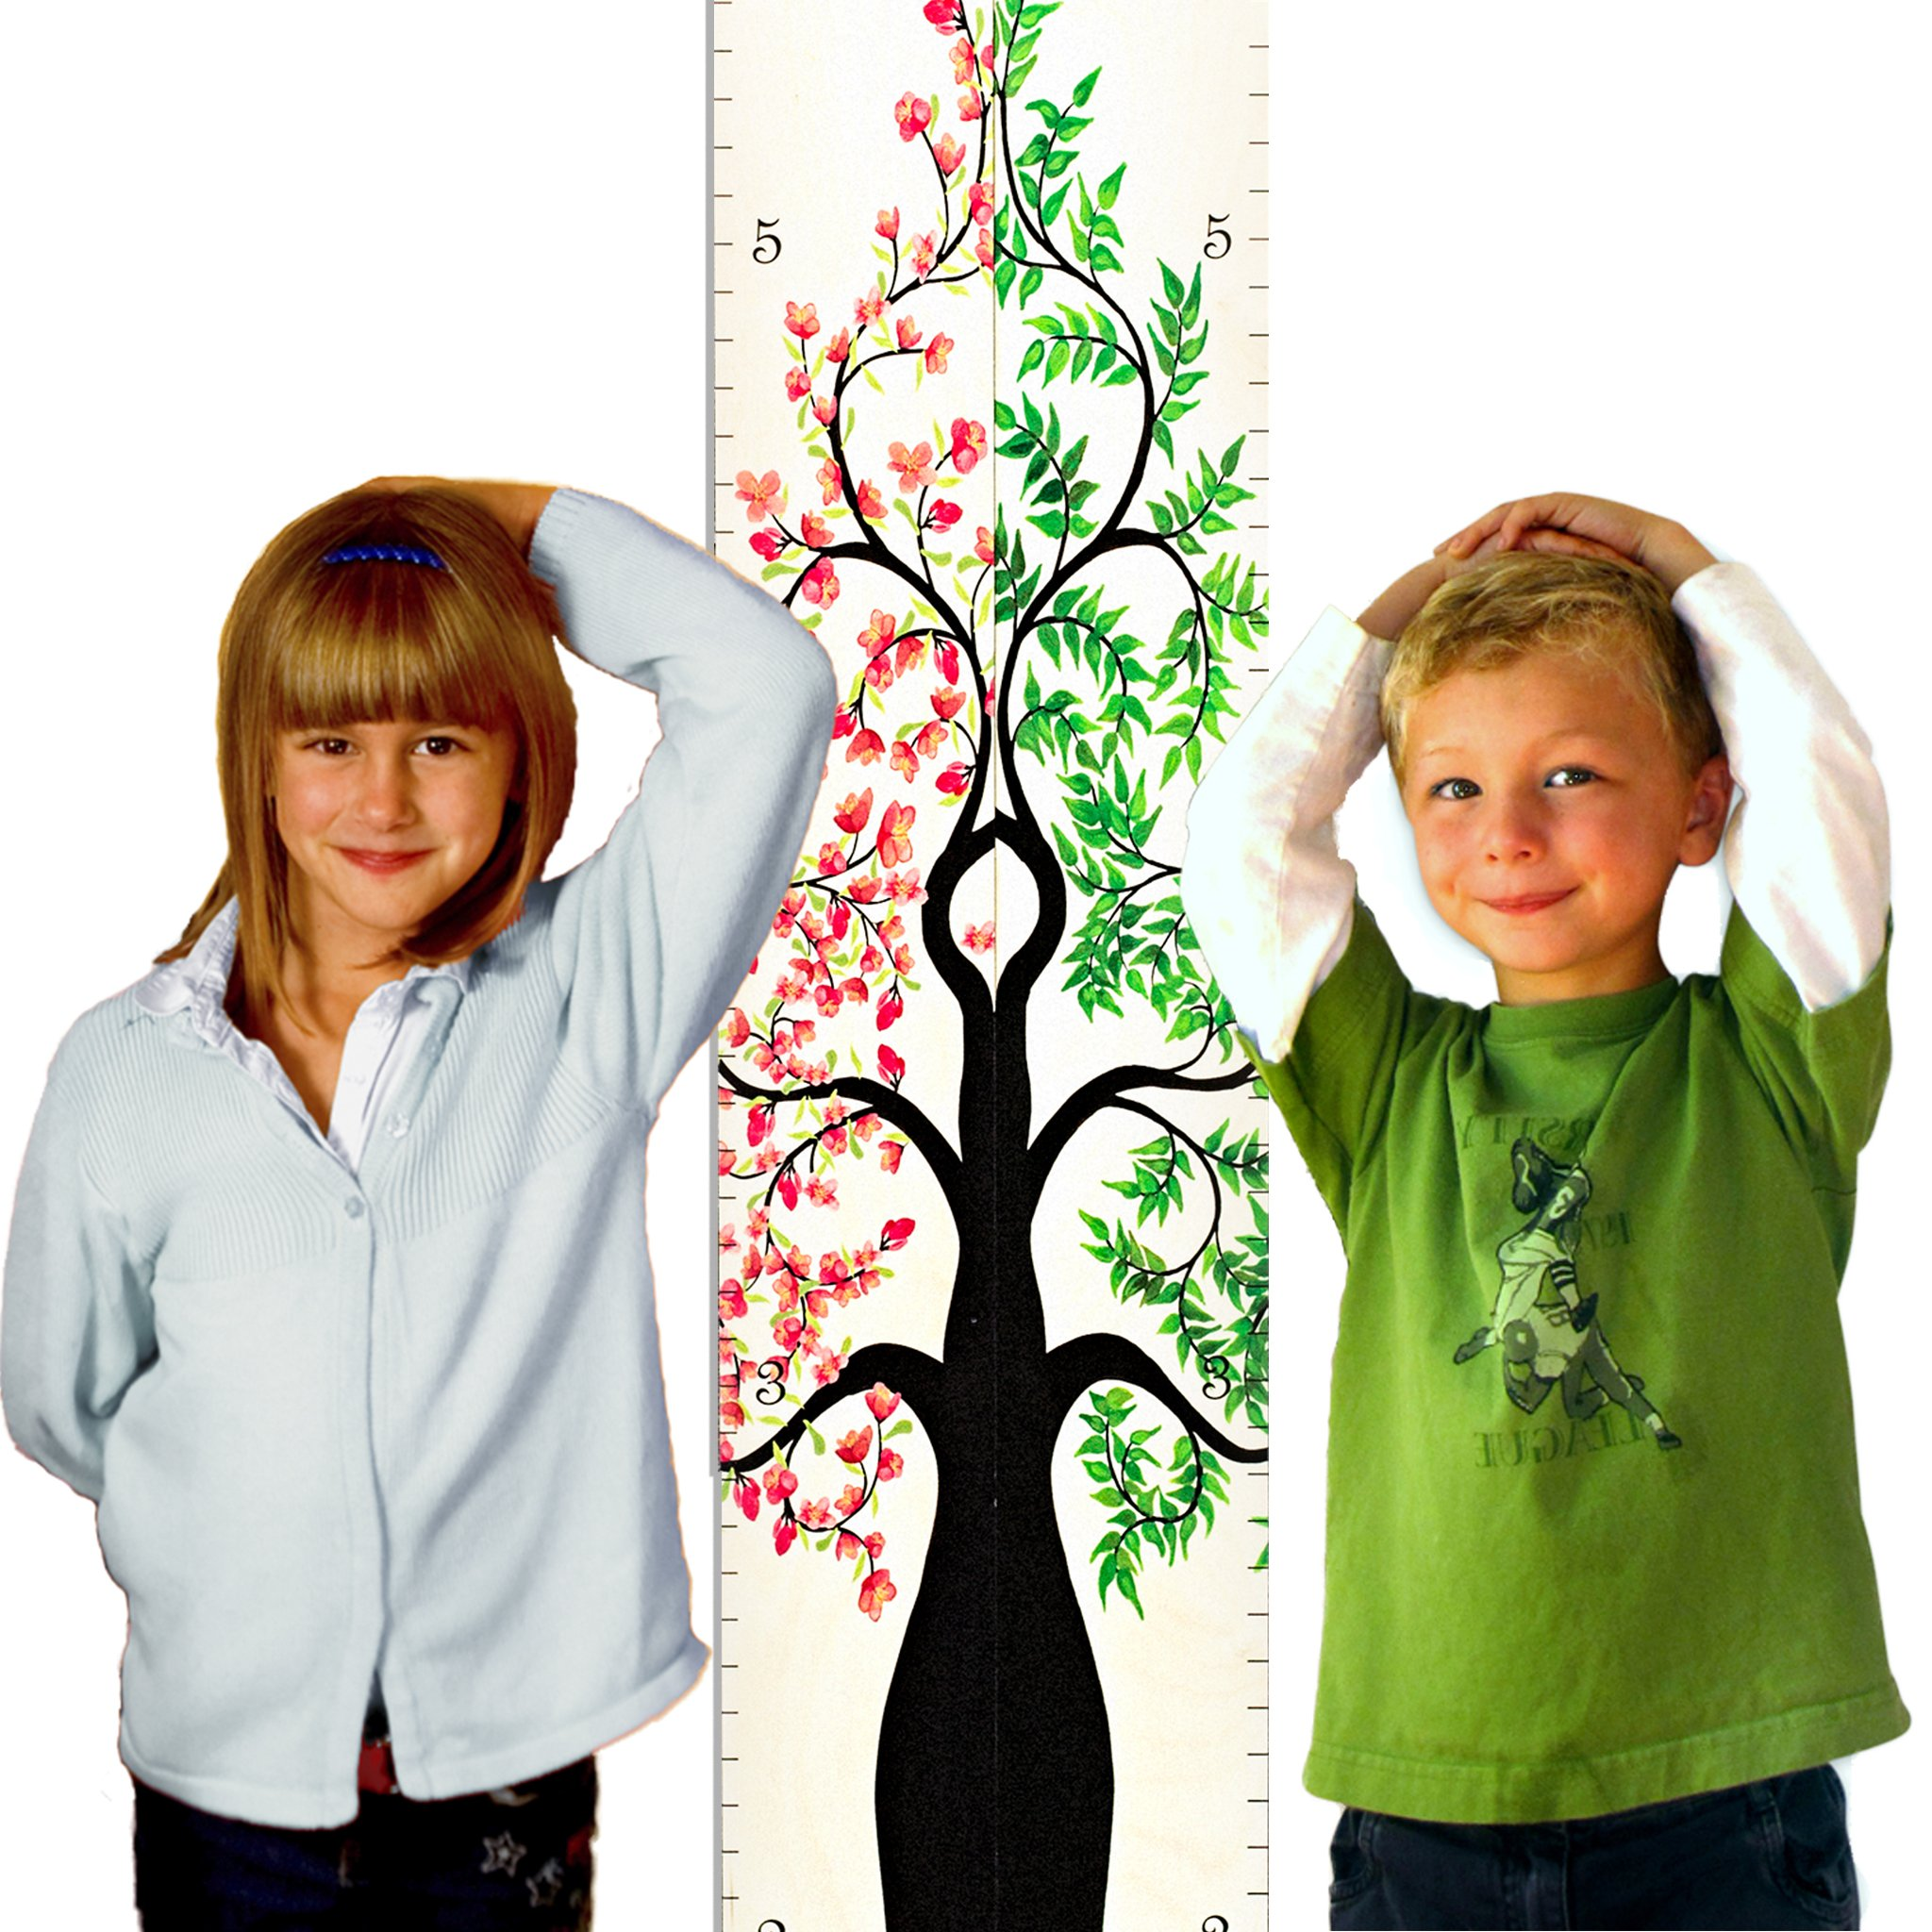 "Growth Chart Art | Hanging Wooden Height Growth Chart Pair to Measure Siblings, Twins, Children, Grandchildren - Pink Rose Flower Blossom and Green Tree of Life Pair for Girls, Boys - 58""x11.25"" by Growth Chart Art"